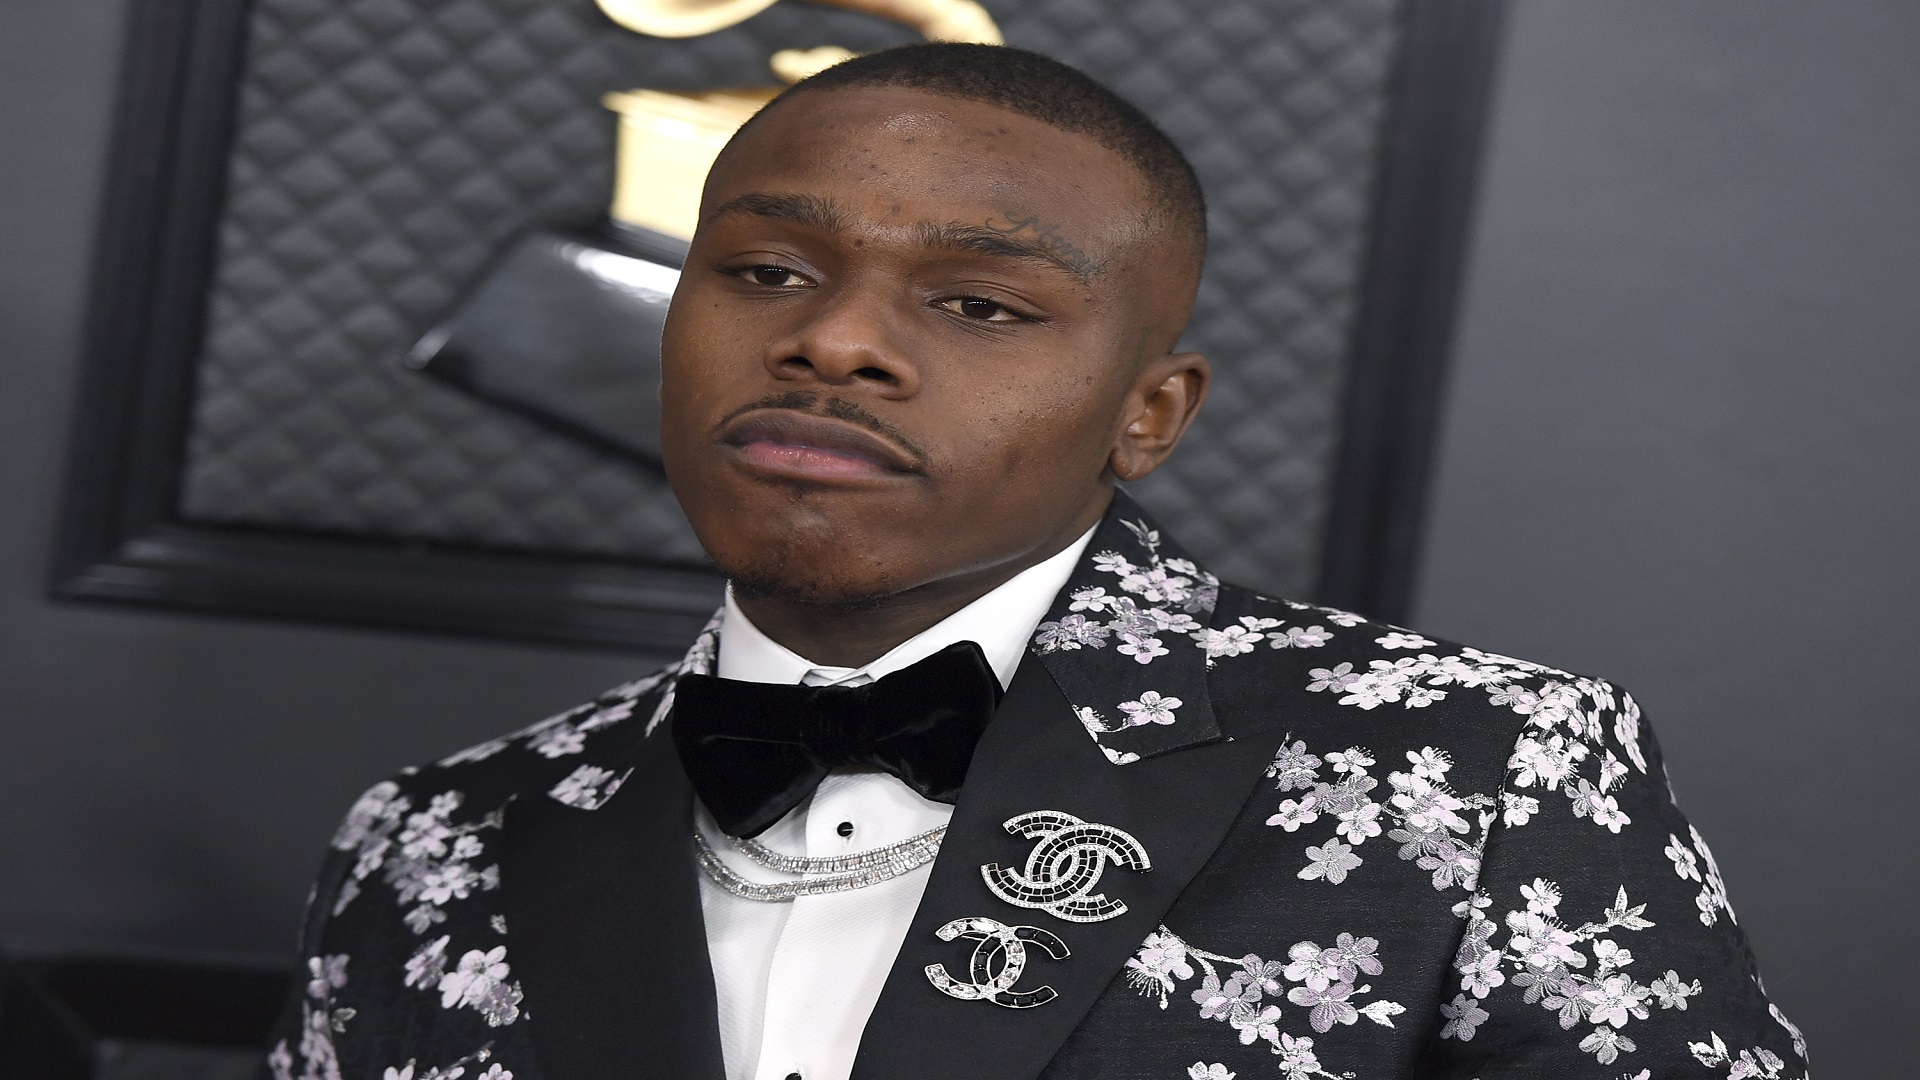 Rapper DaBaby arrested on Beverly Hills weapons allegation